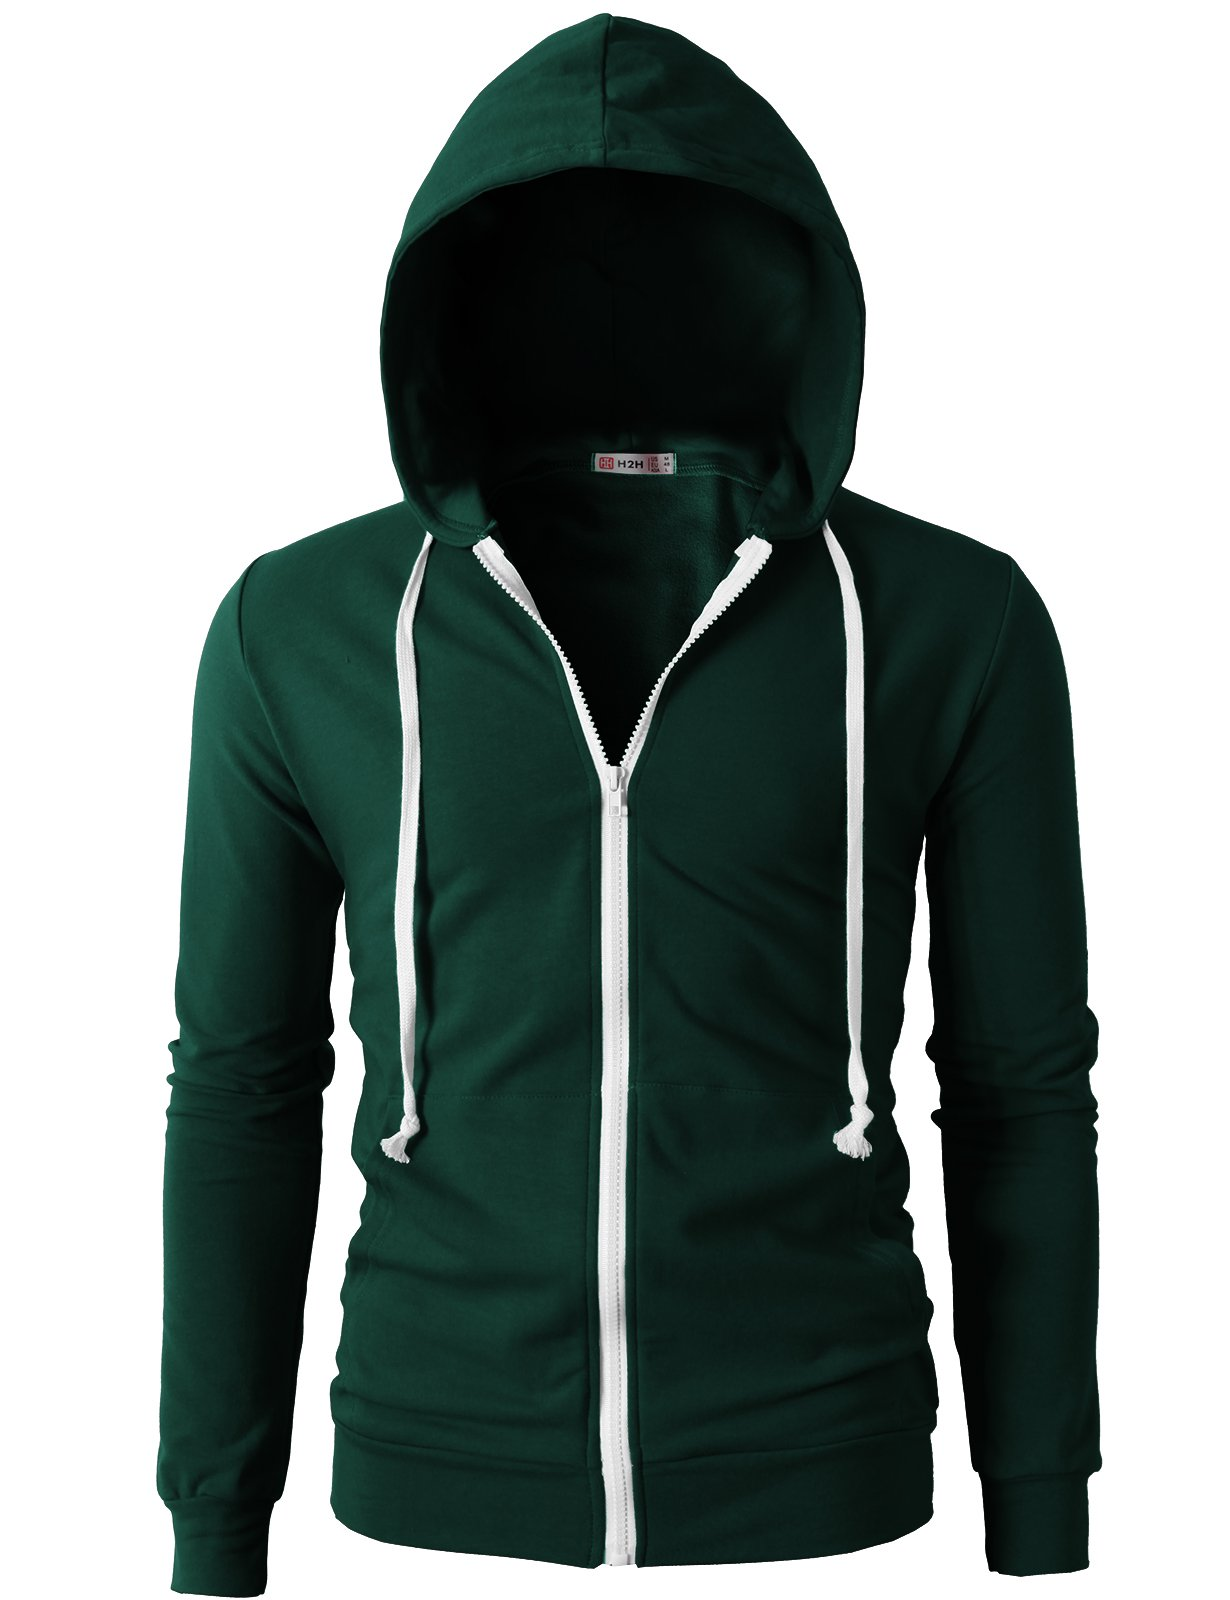 H2H Men's Casual Striped Drawstring Hooded And Zipper Closure Hoodies FORESTGREEN US XL/Asia XXXL (JNSK24) by H2H (Image #3)